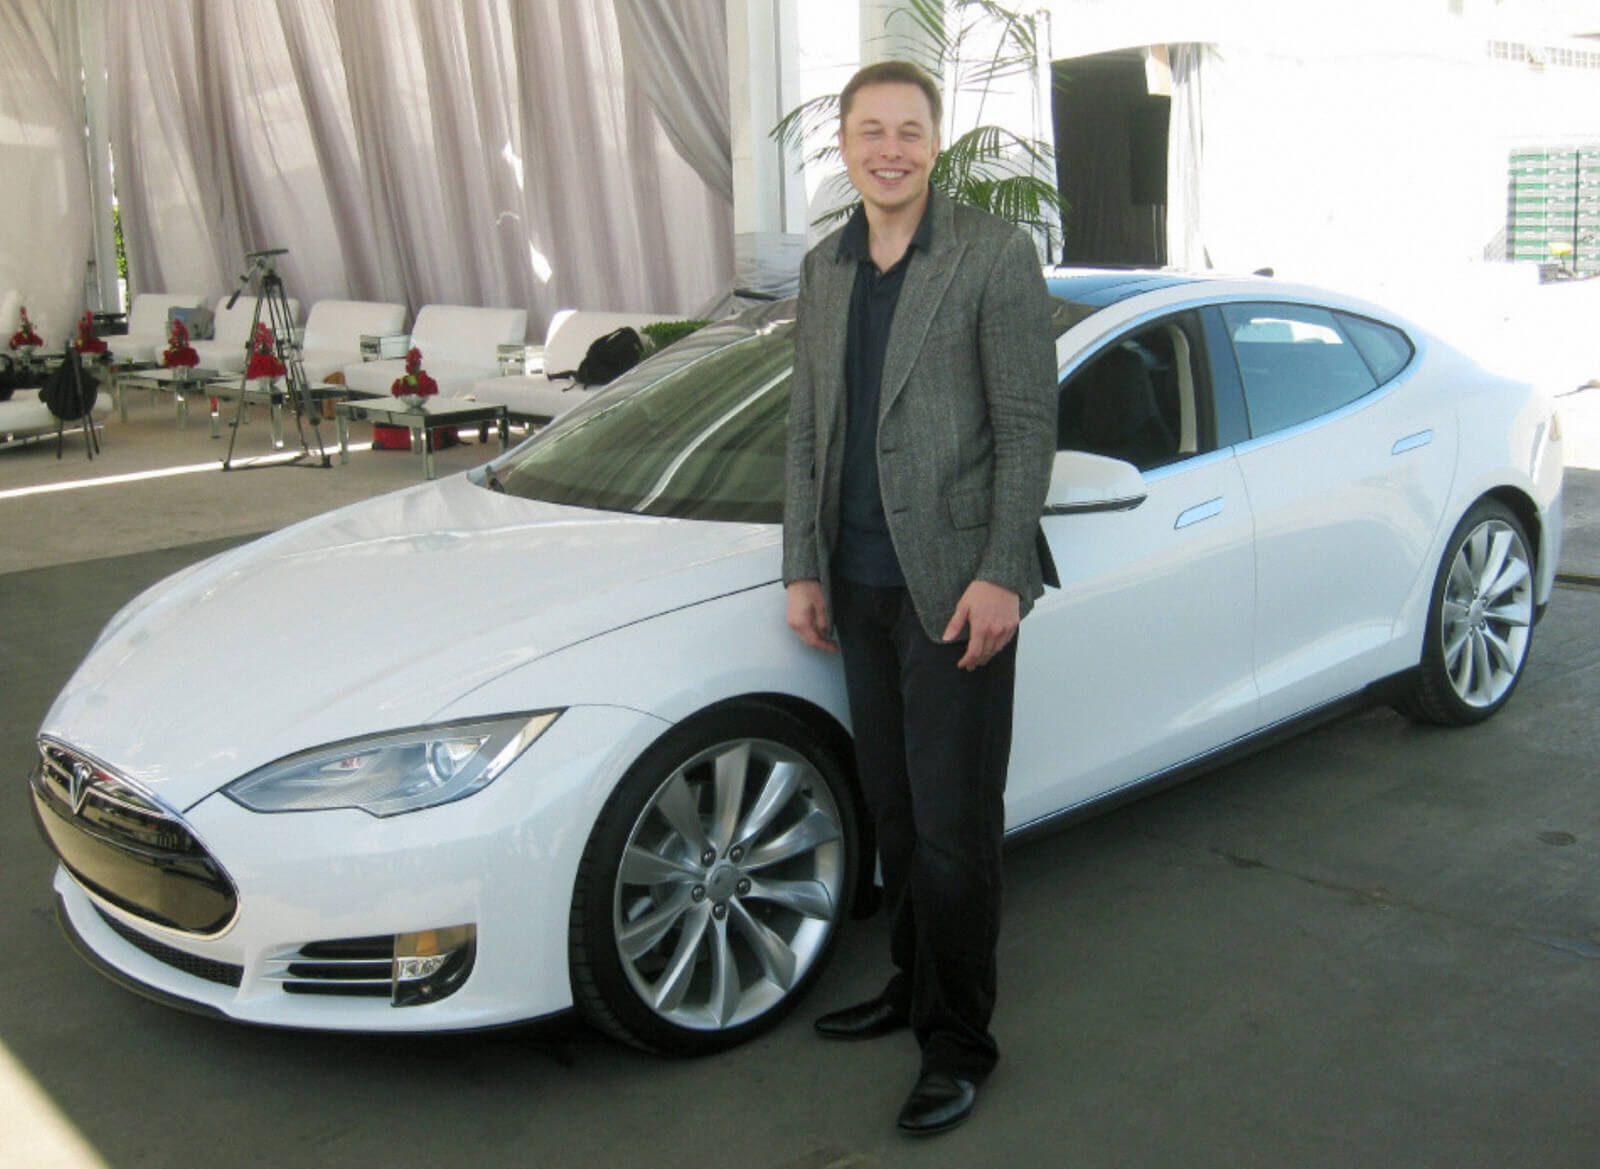 Musk shows off the Model S